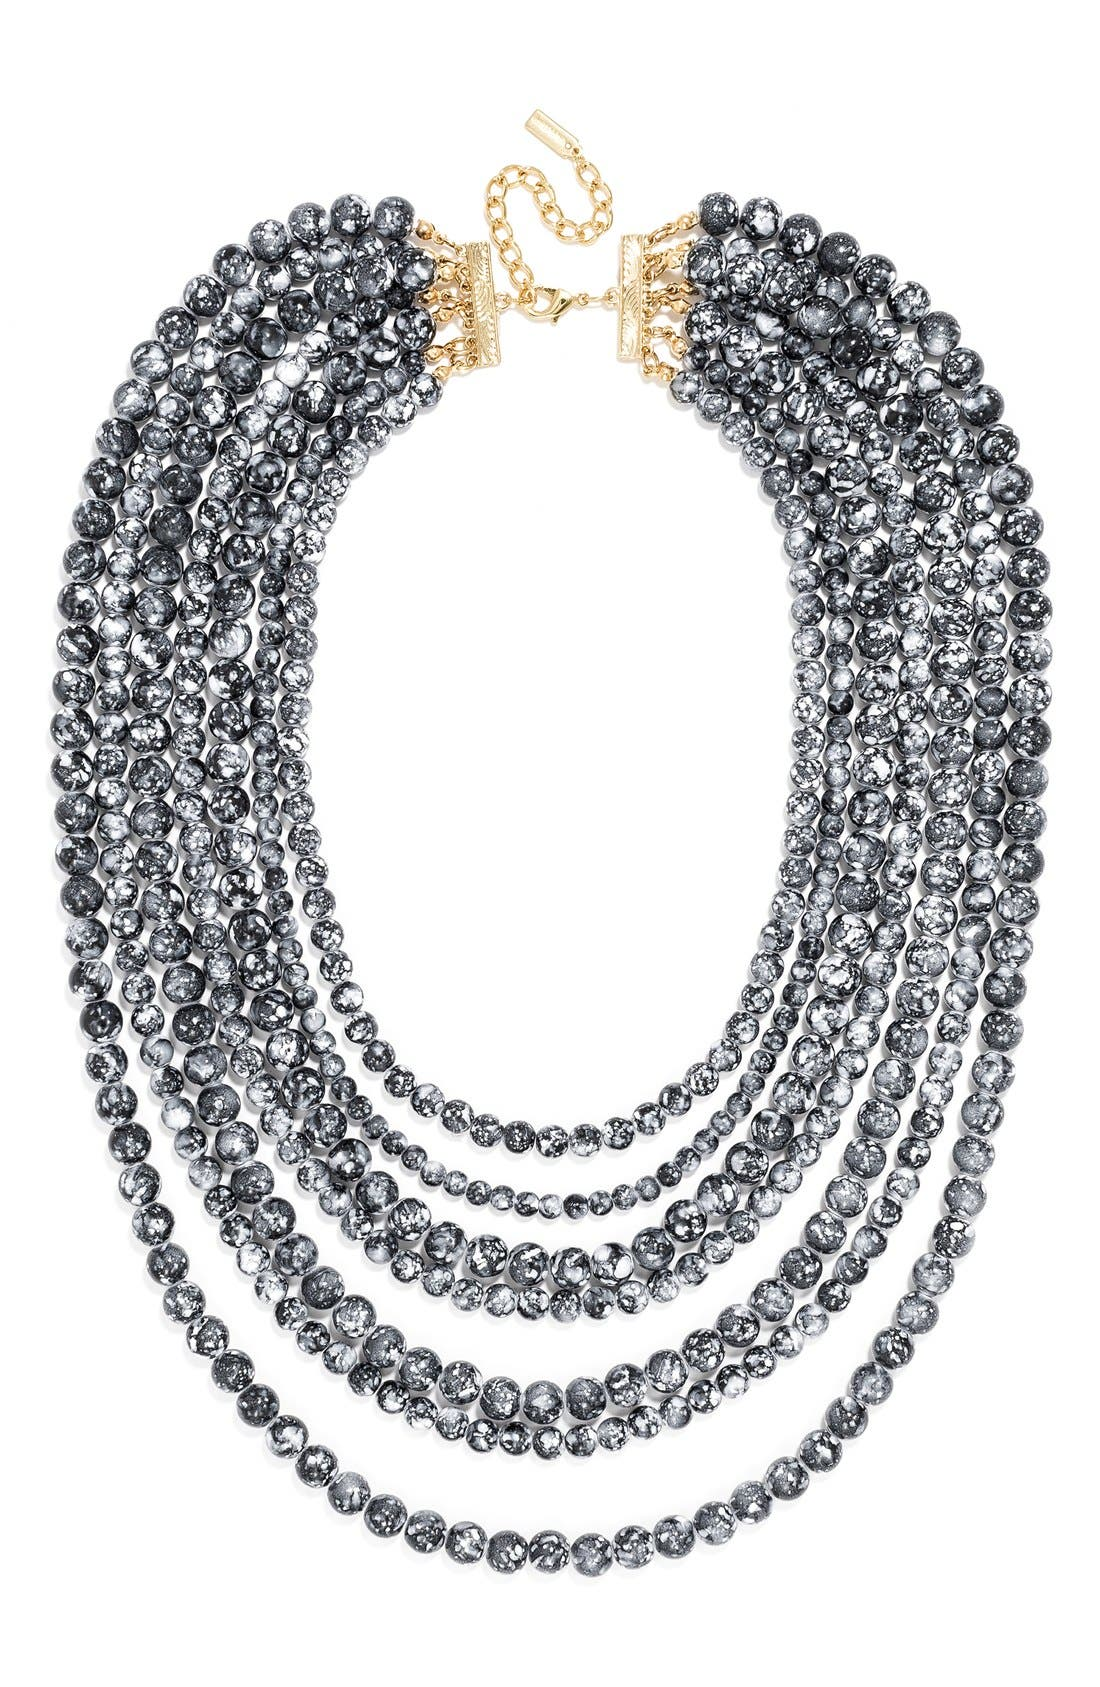 Main Image - BaubleBar 'Bold' Multistrand Beaded Statement Necklace